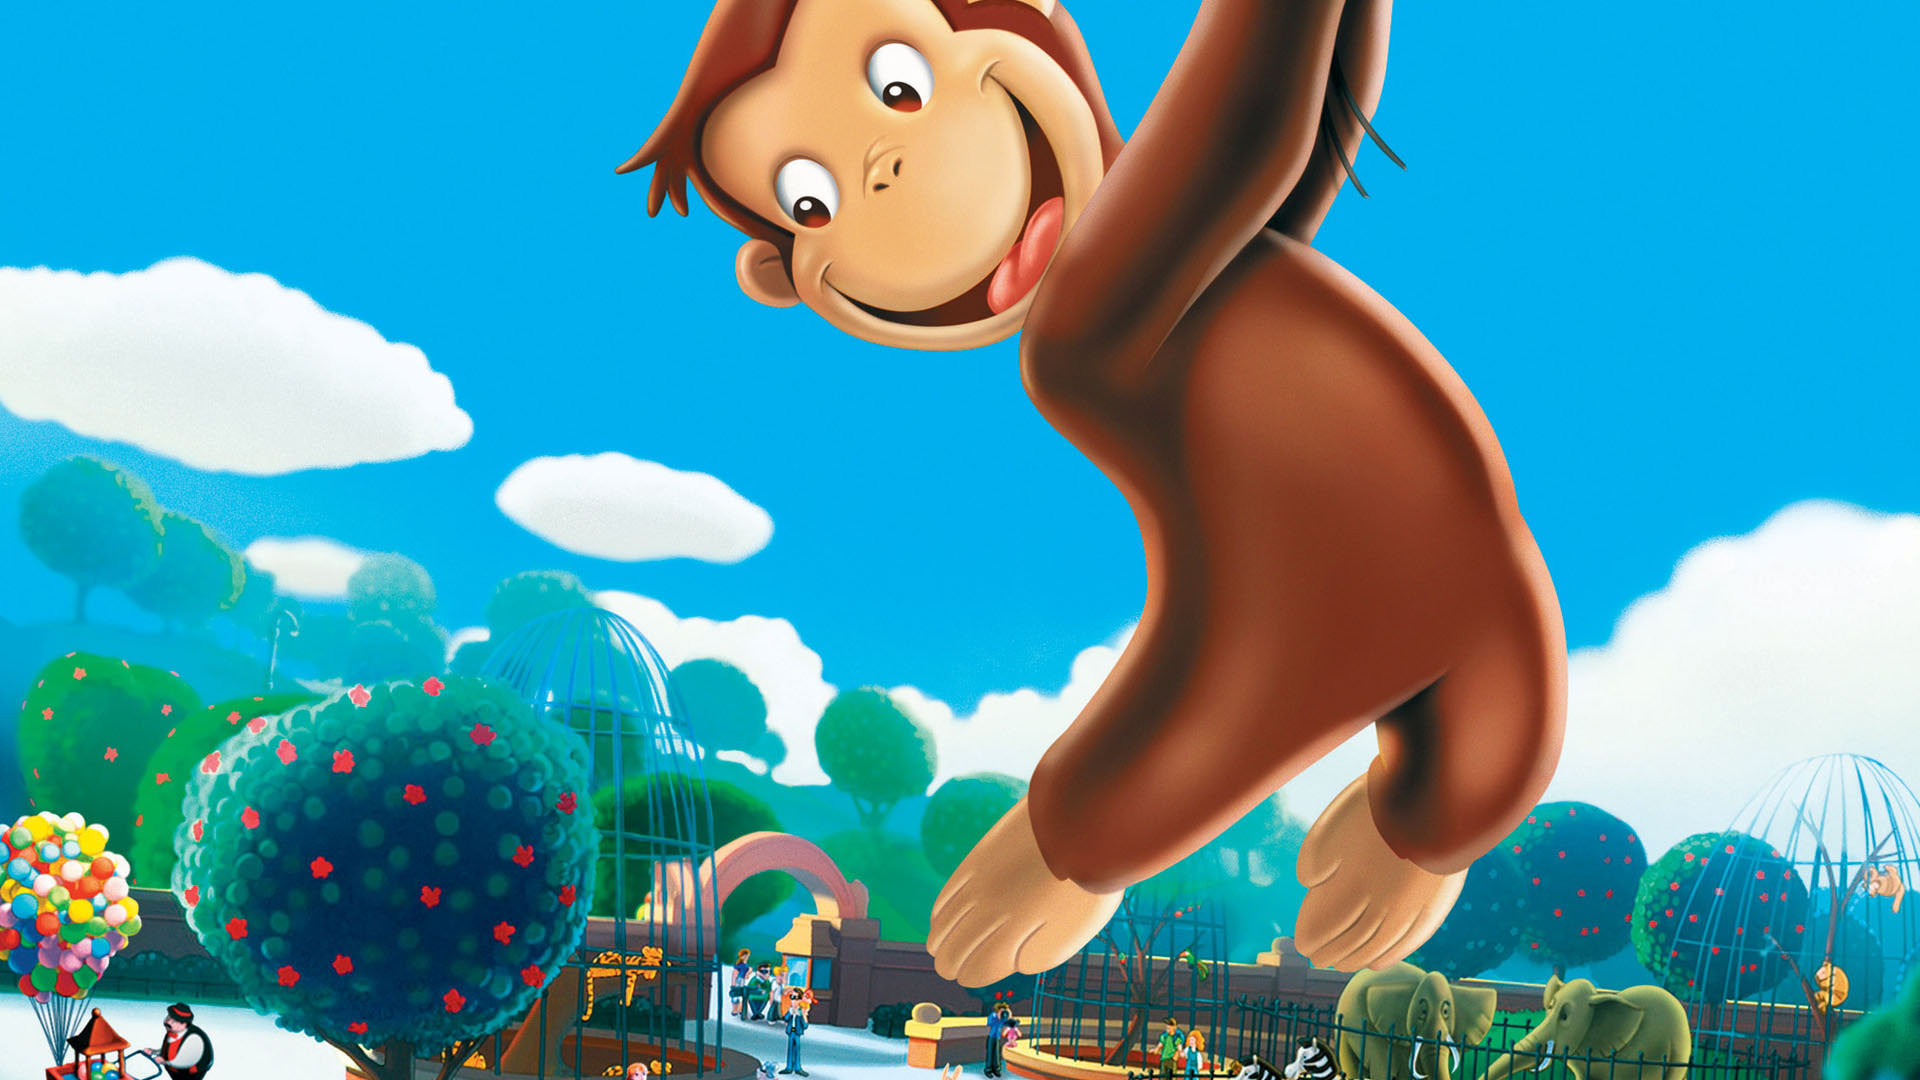 Curious George Hd Wallpaper Background Image 1920x1080 Id 800973 Wallpaper Abyss